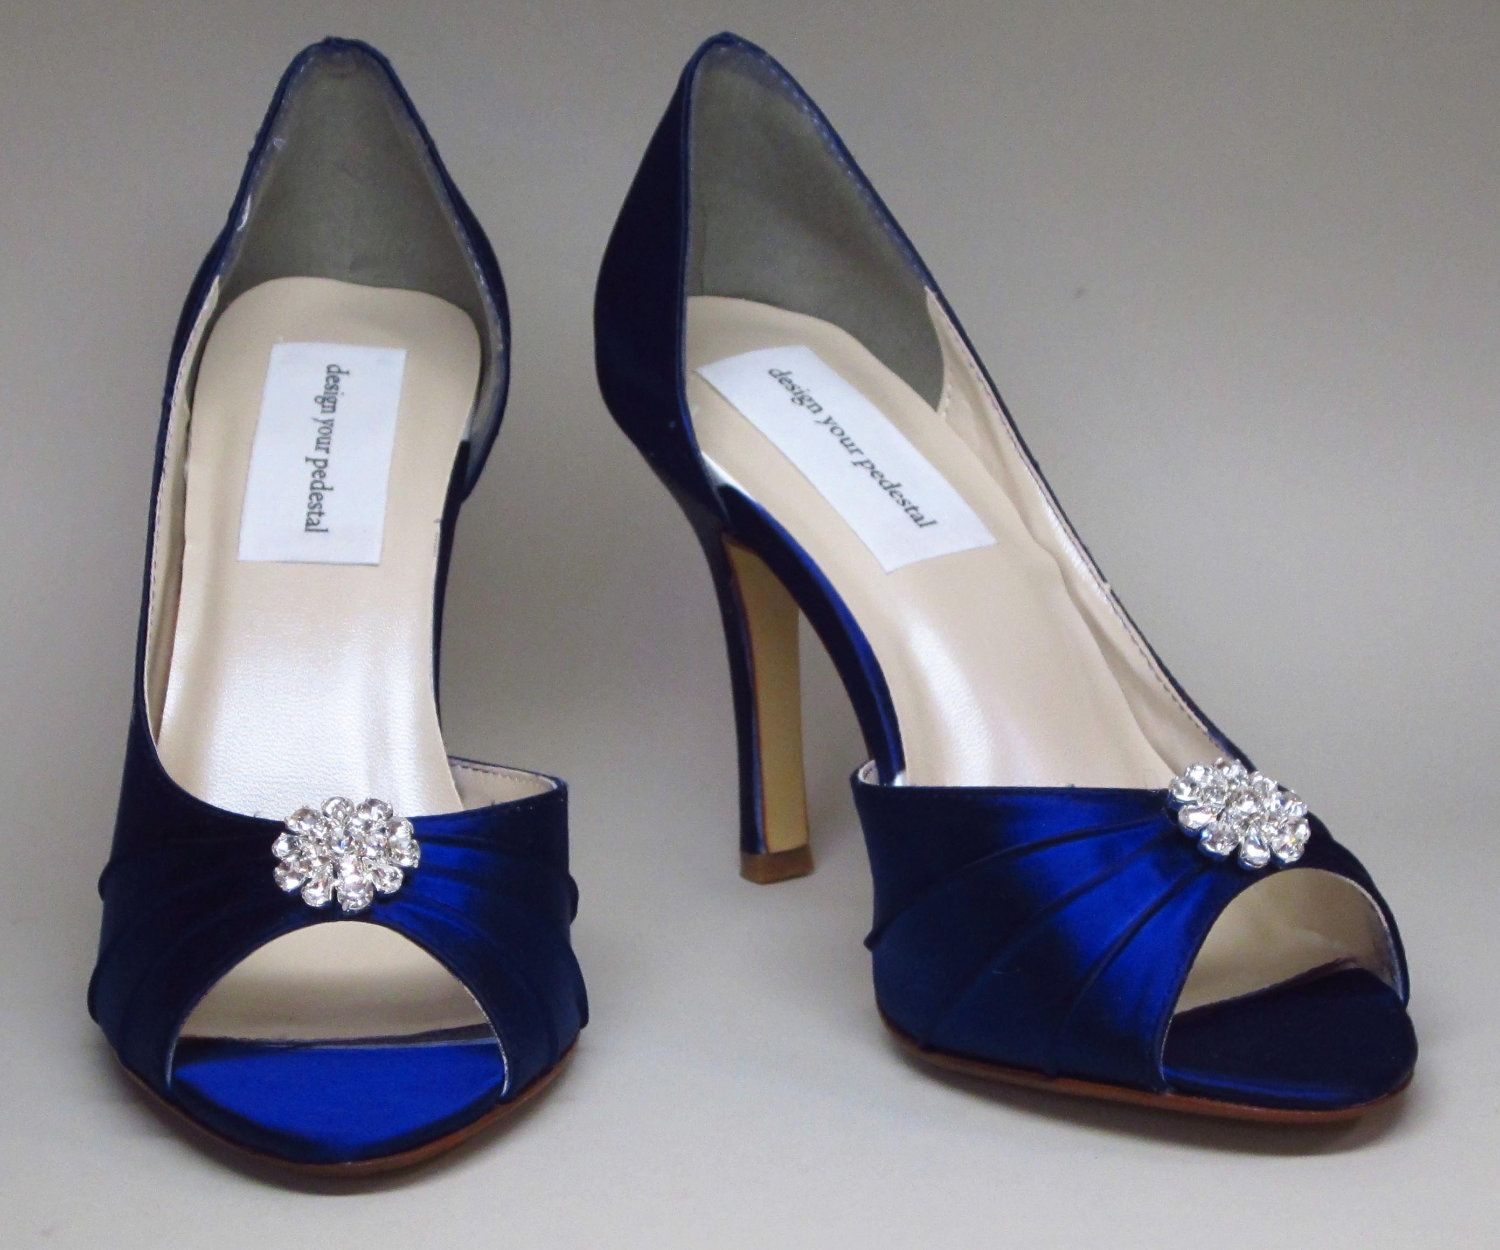 1000  images about shoes on Pinterest | Cobalt blue shoes, Wedding ...